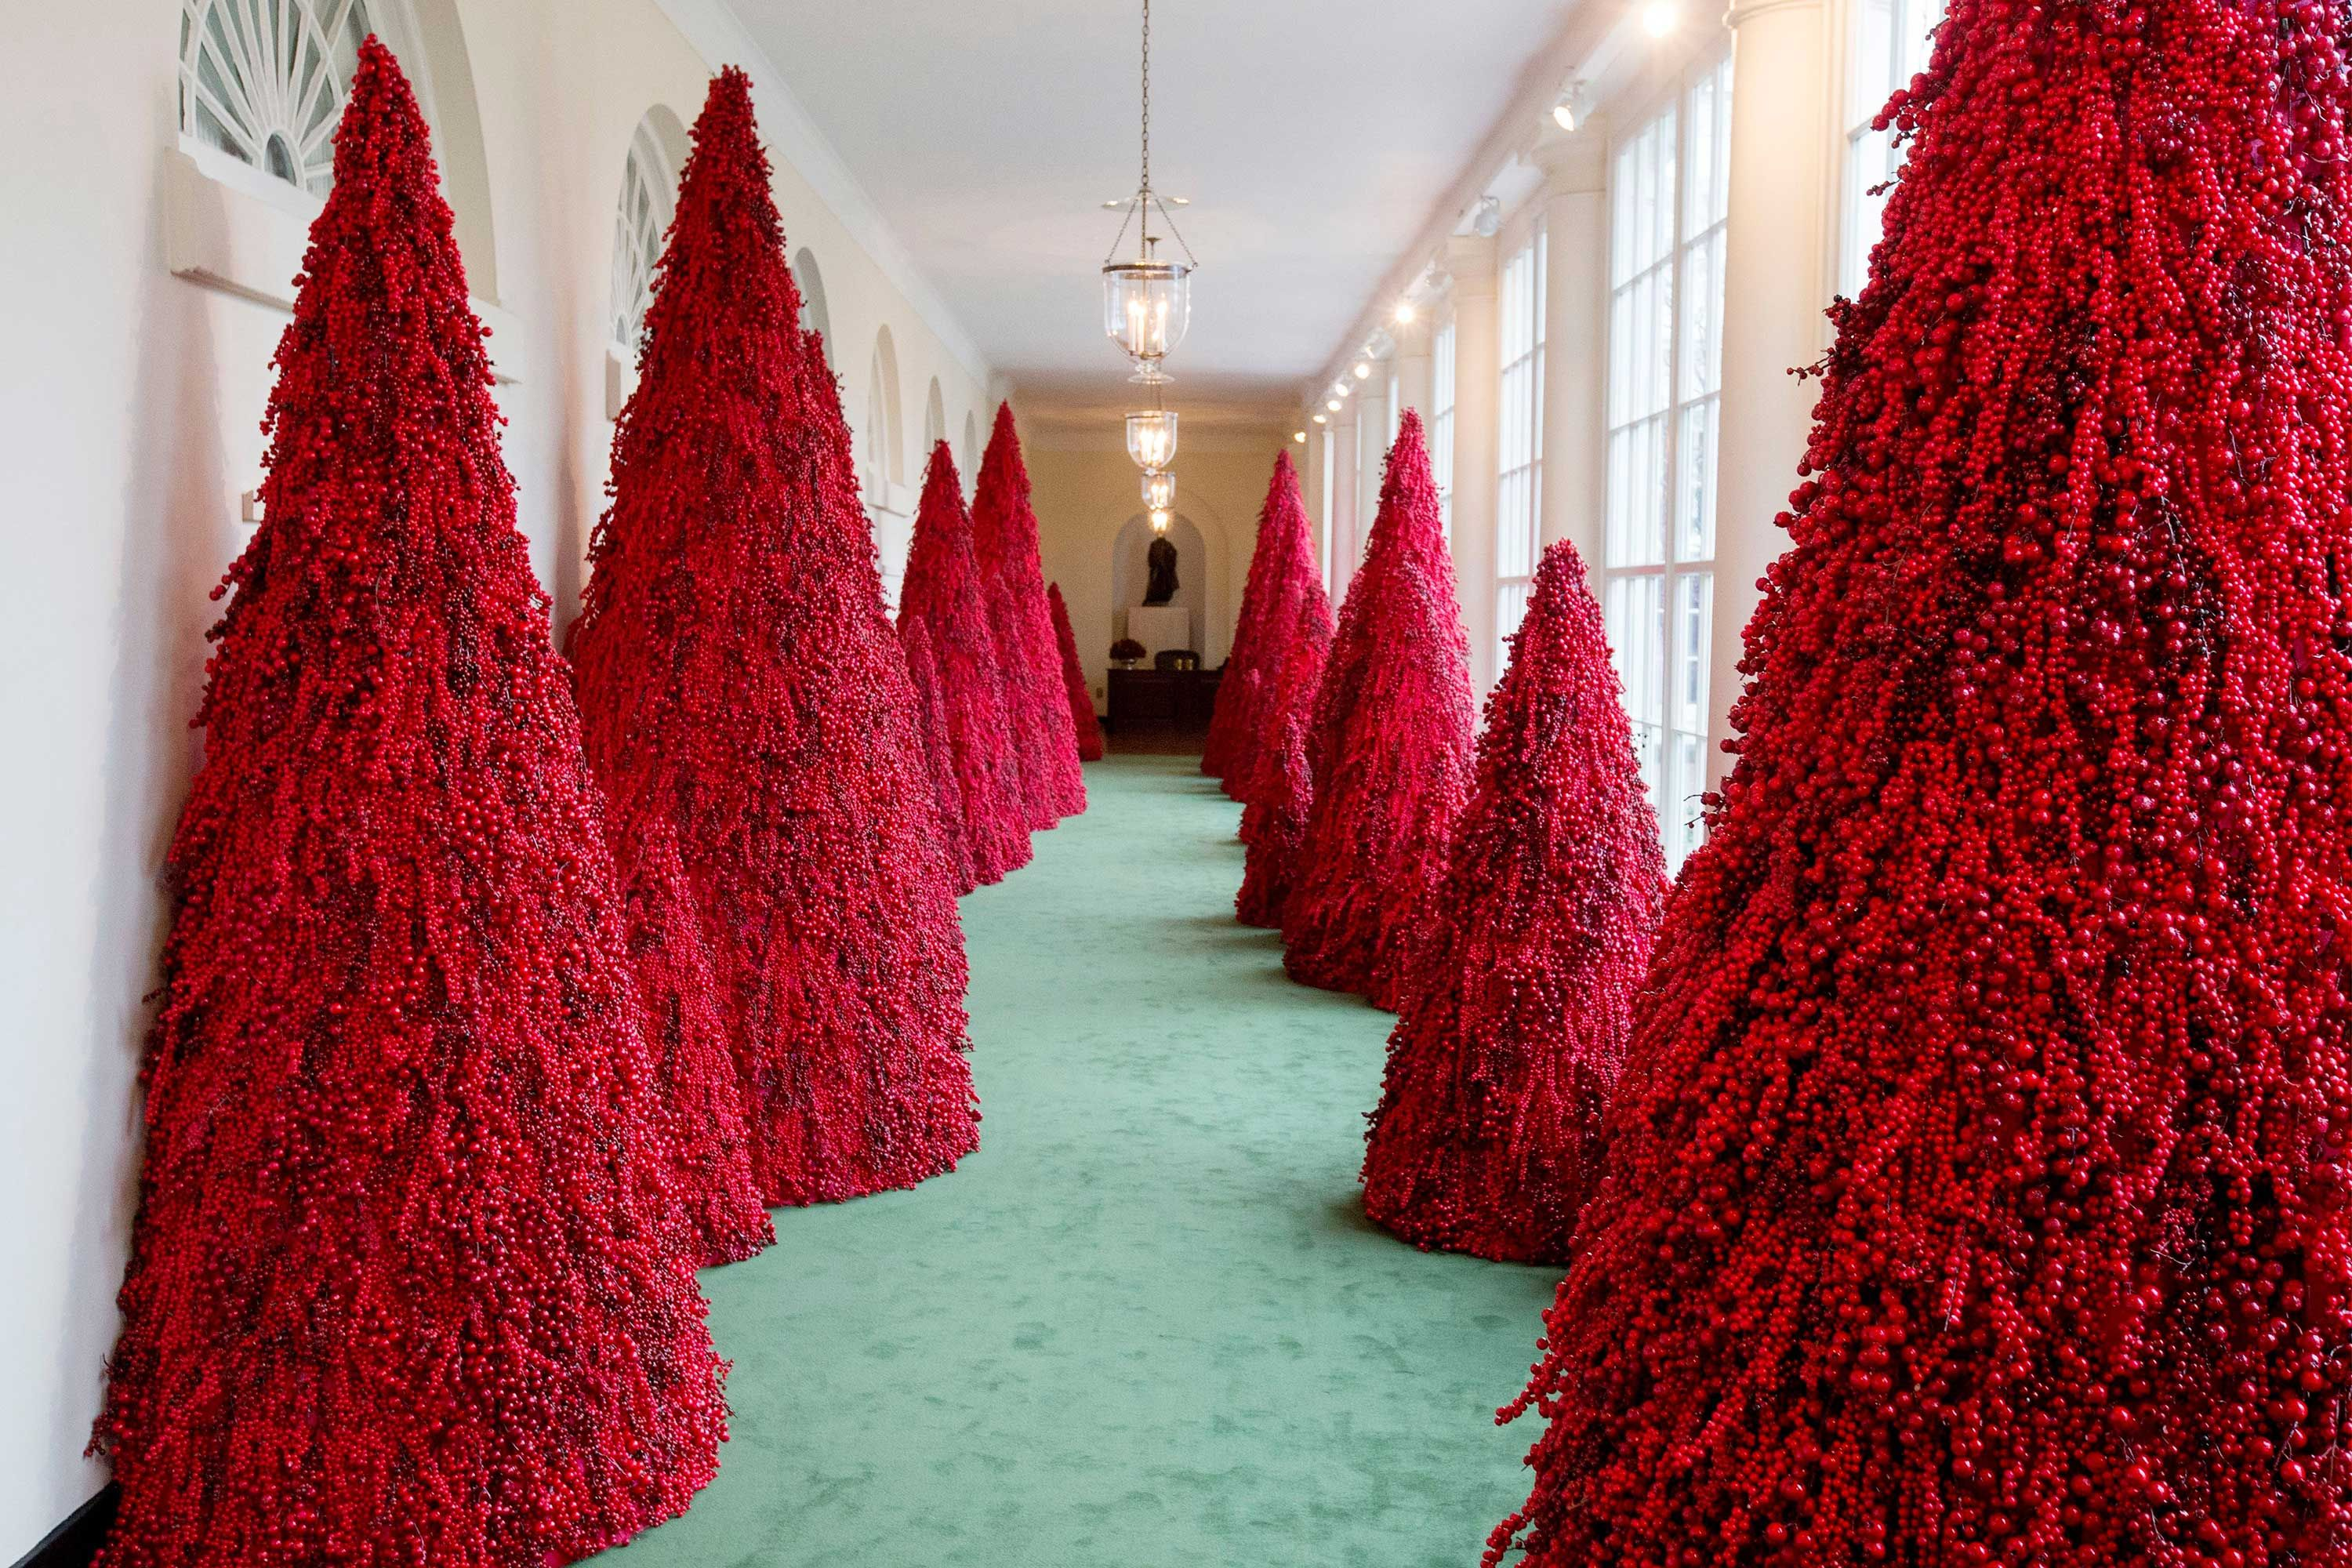 Whitehouse Christmas Decorations.White House Christmas Decorations Confuse Twitter Yet Again